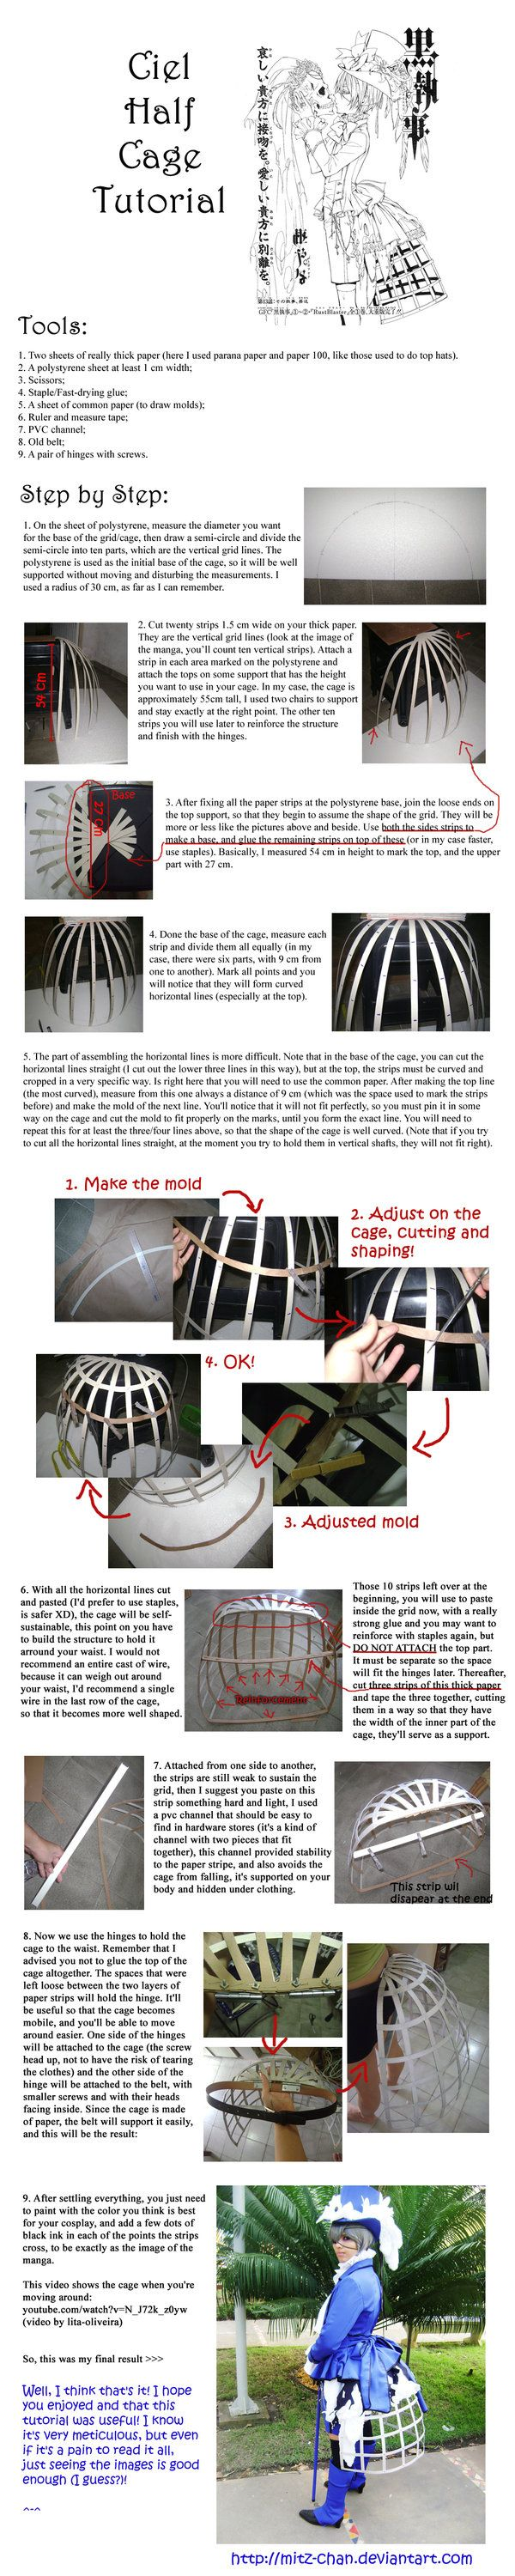 half cage skirt tutorial